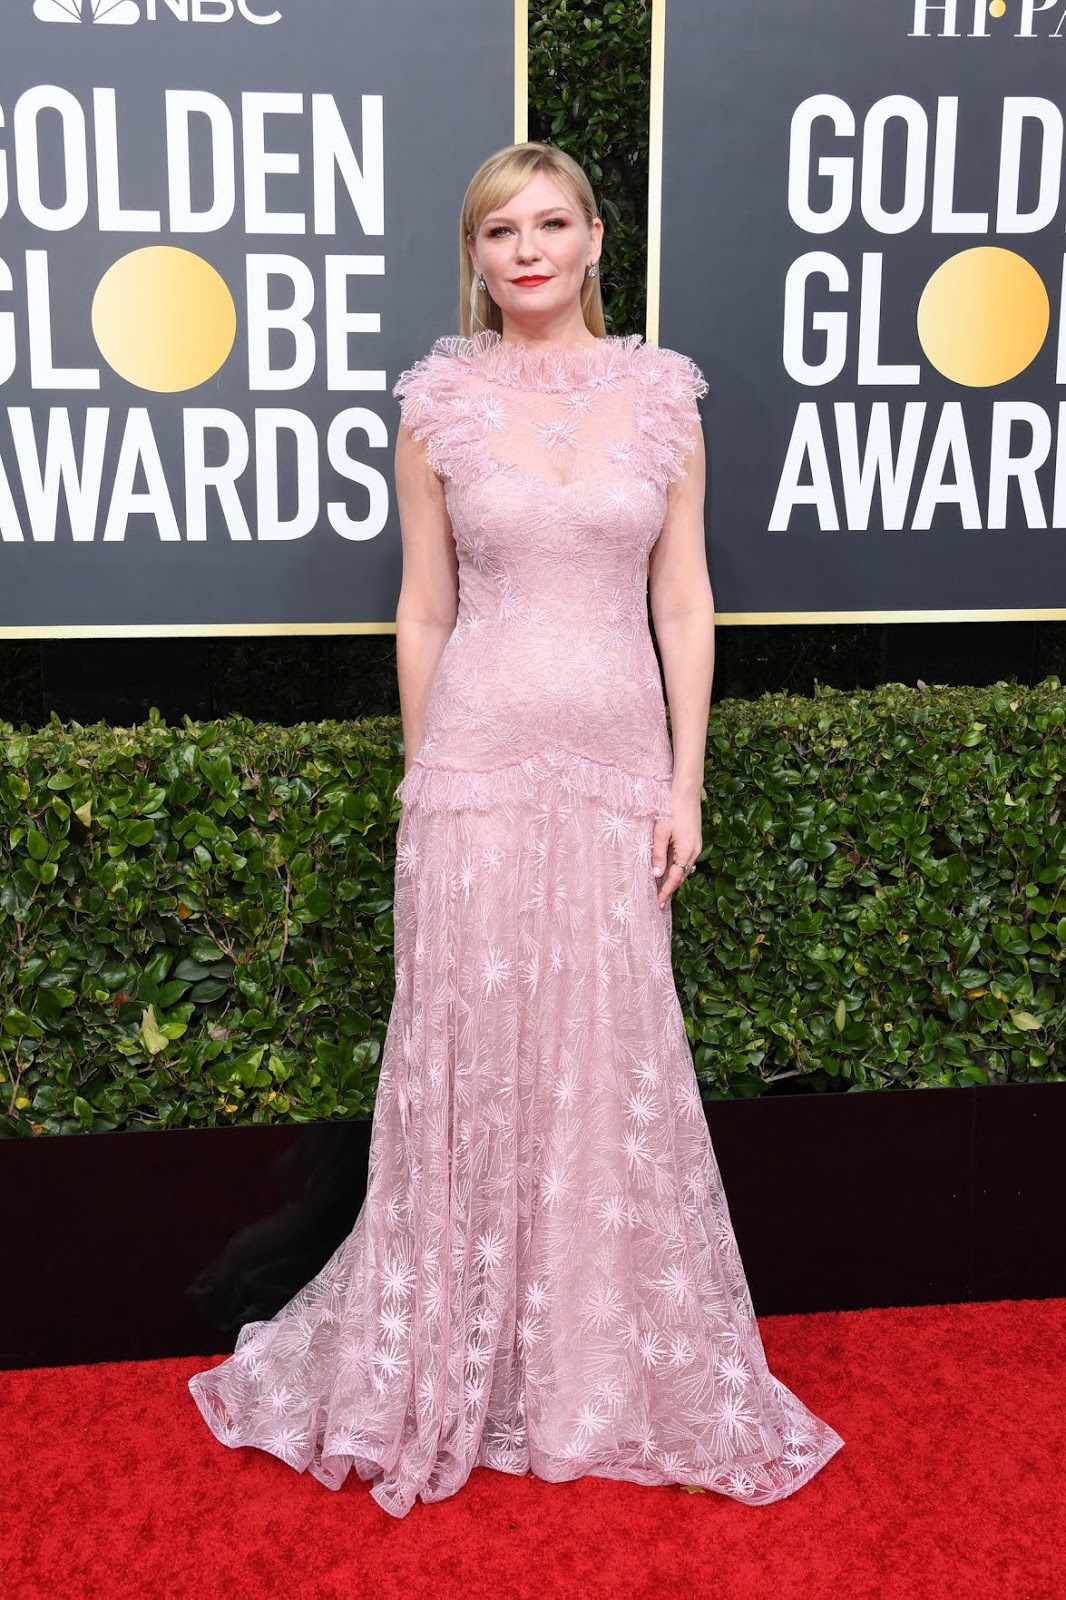 Kristen Dunst wears pastel Rodarte to the 2020 Golden Globe Awards